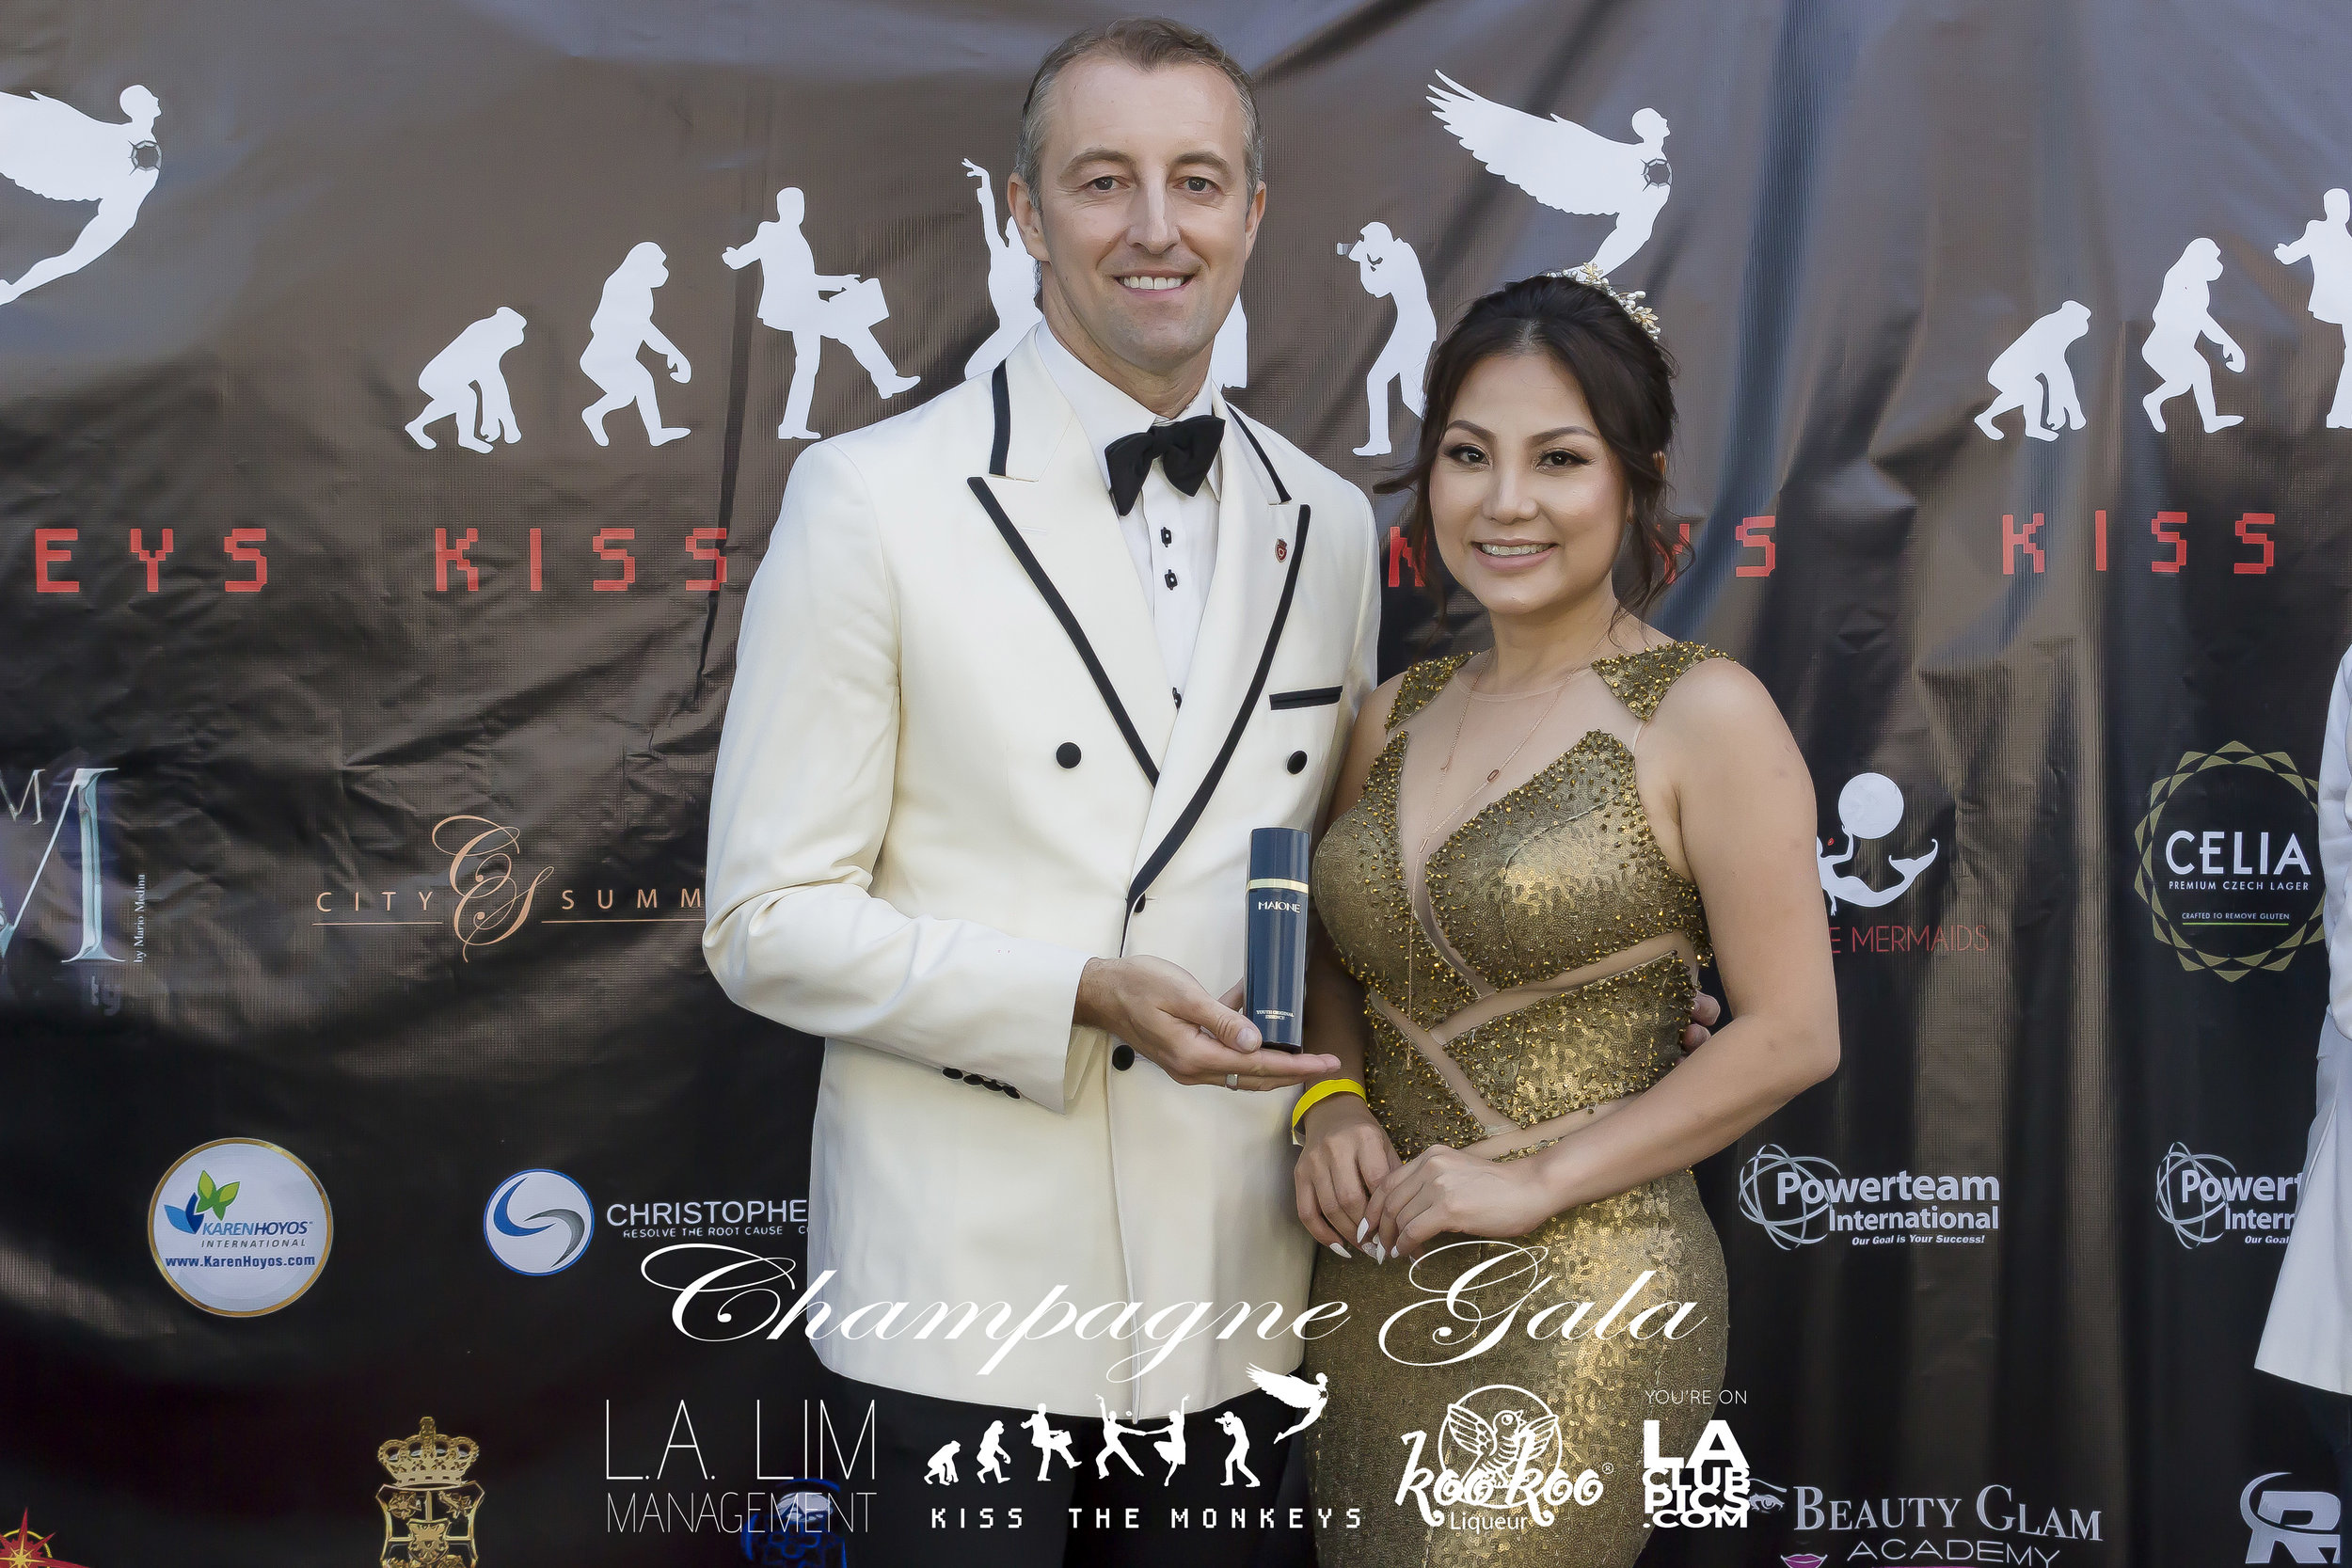 Kiss The Monkeys - Champagne Gala - 07-21-18_124.jpg